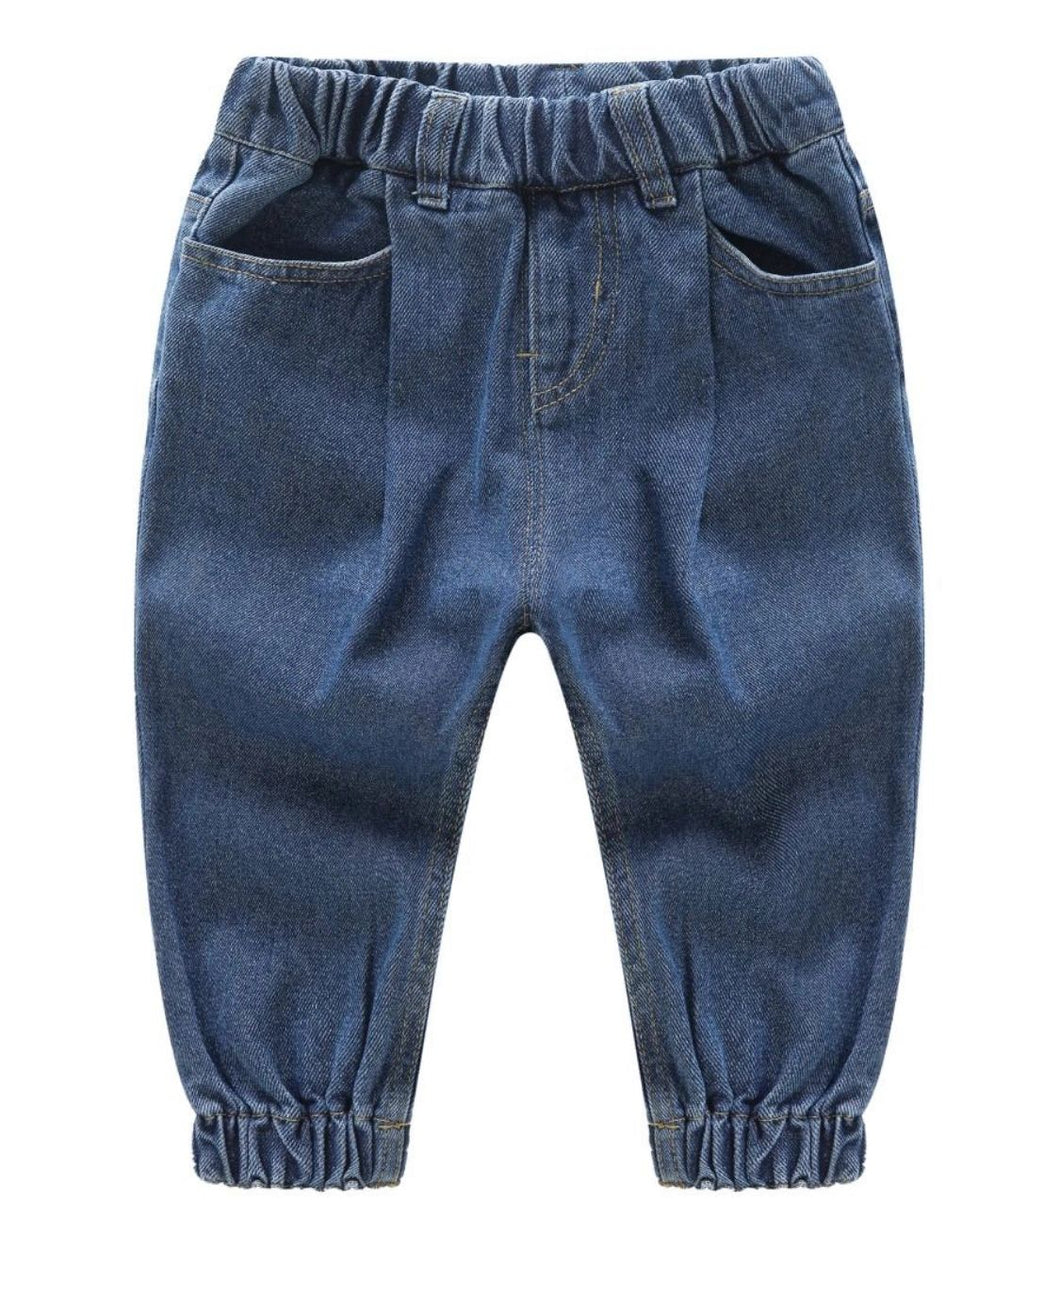 Boys elastic top jeans